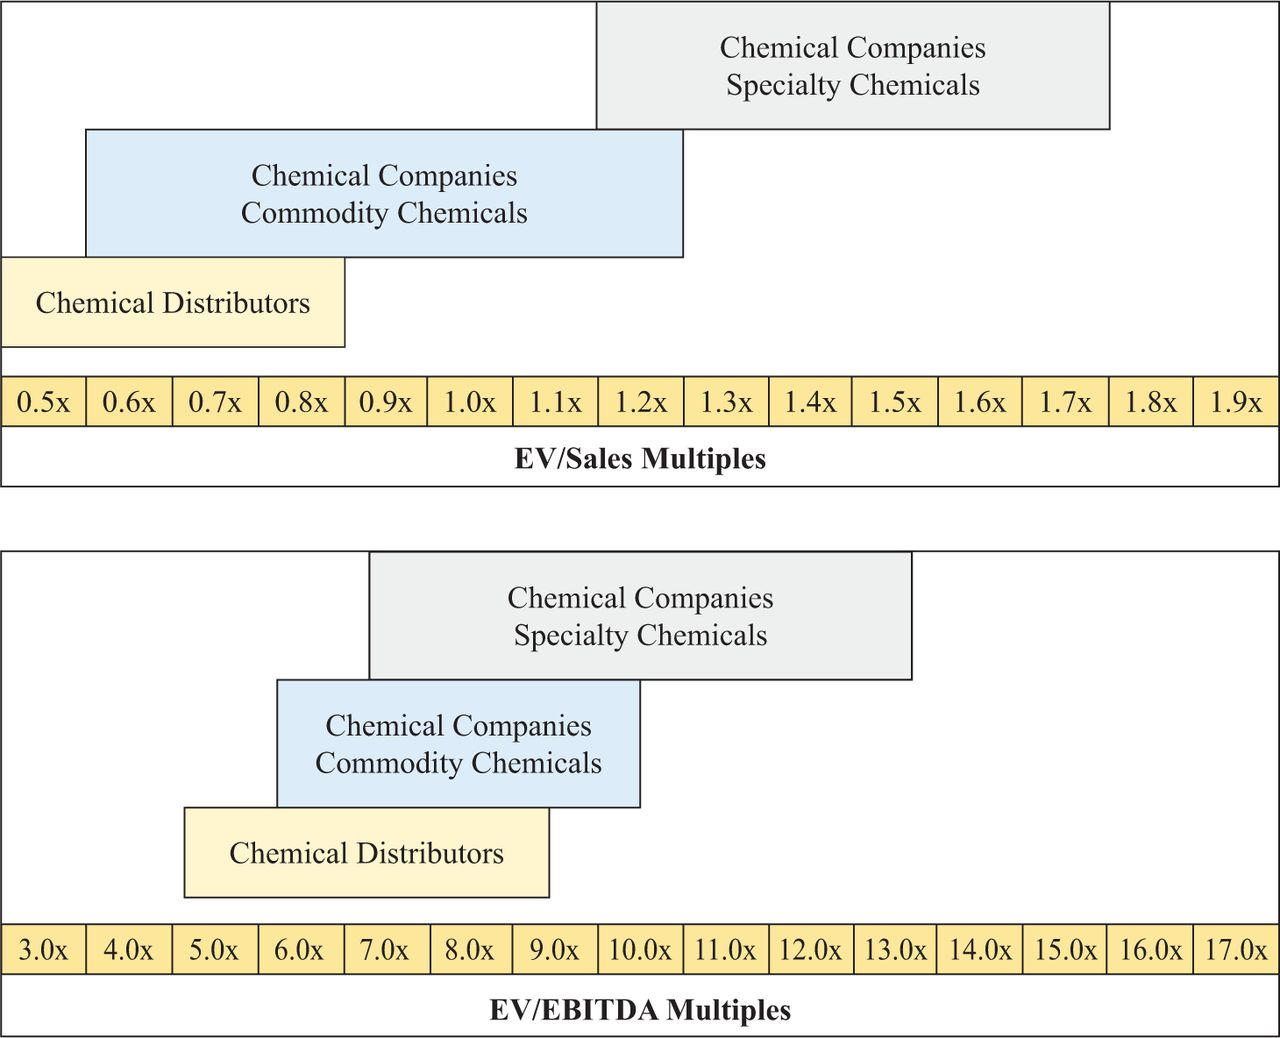 Valuations of Chemical Companies and Distributors